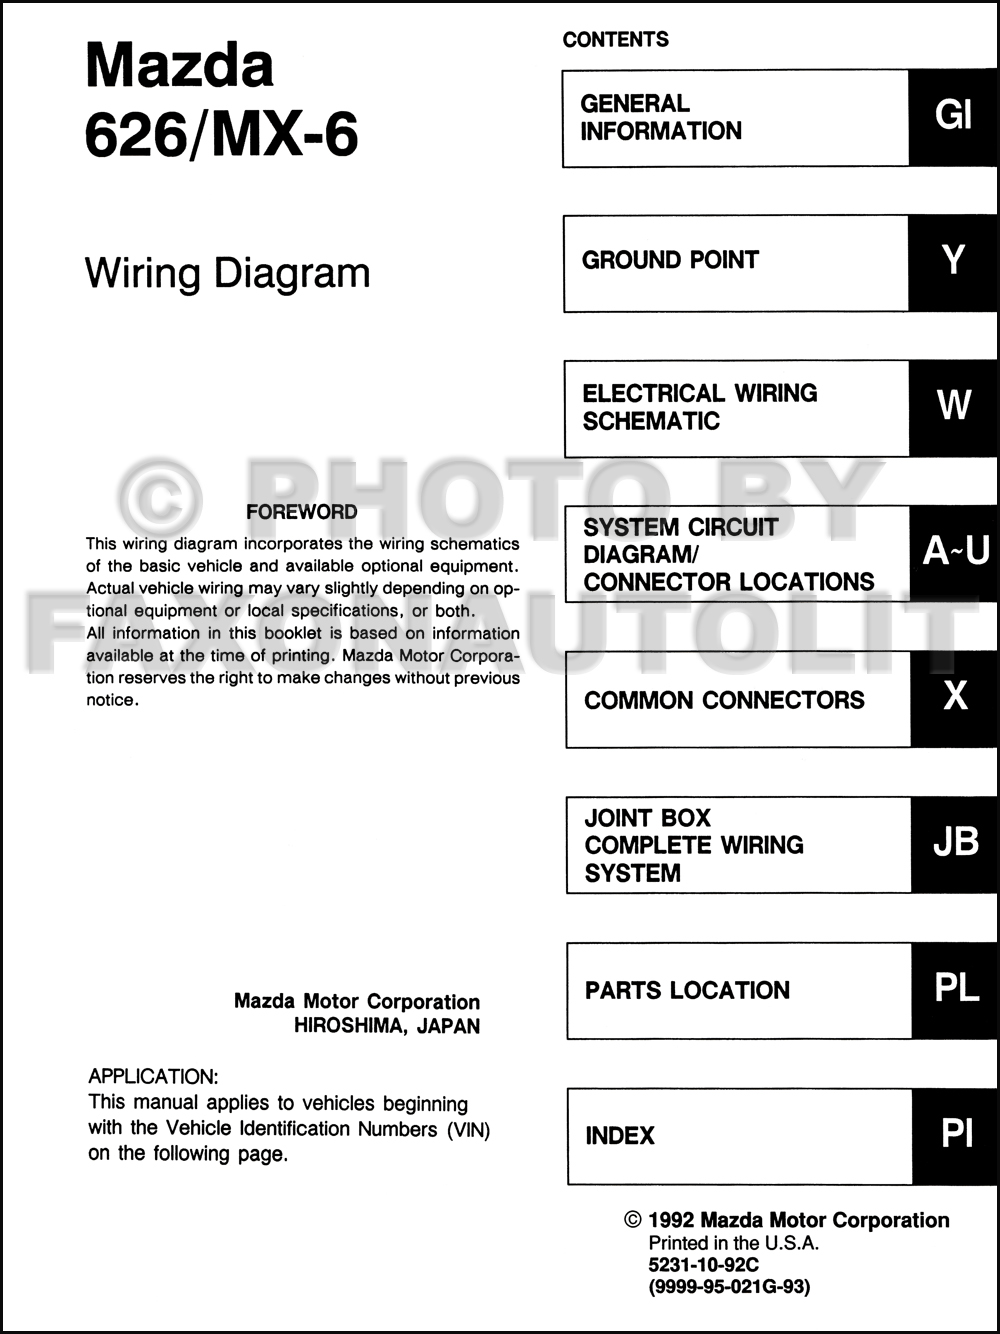 1993Mazda626MX6OWD TOC 1993 mazda 626 and mx 6 wiring diagram manual original mazda 626 wiring diagram at aneh.co